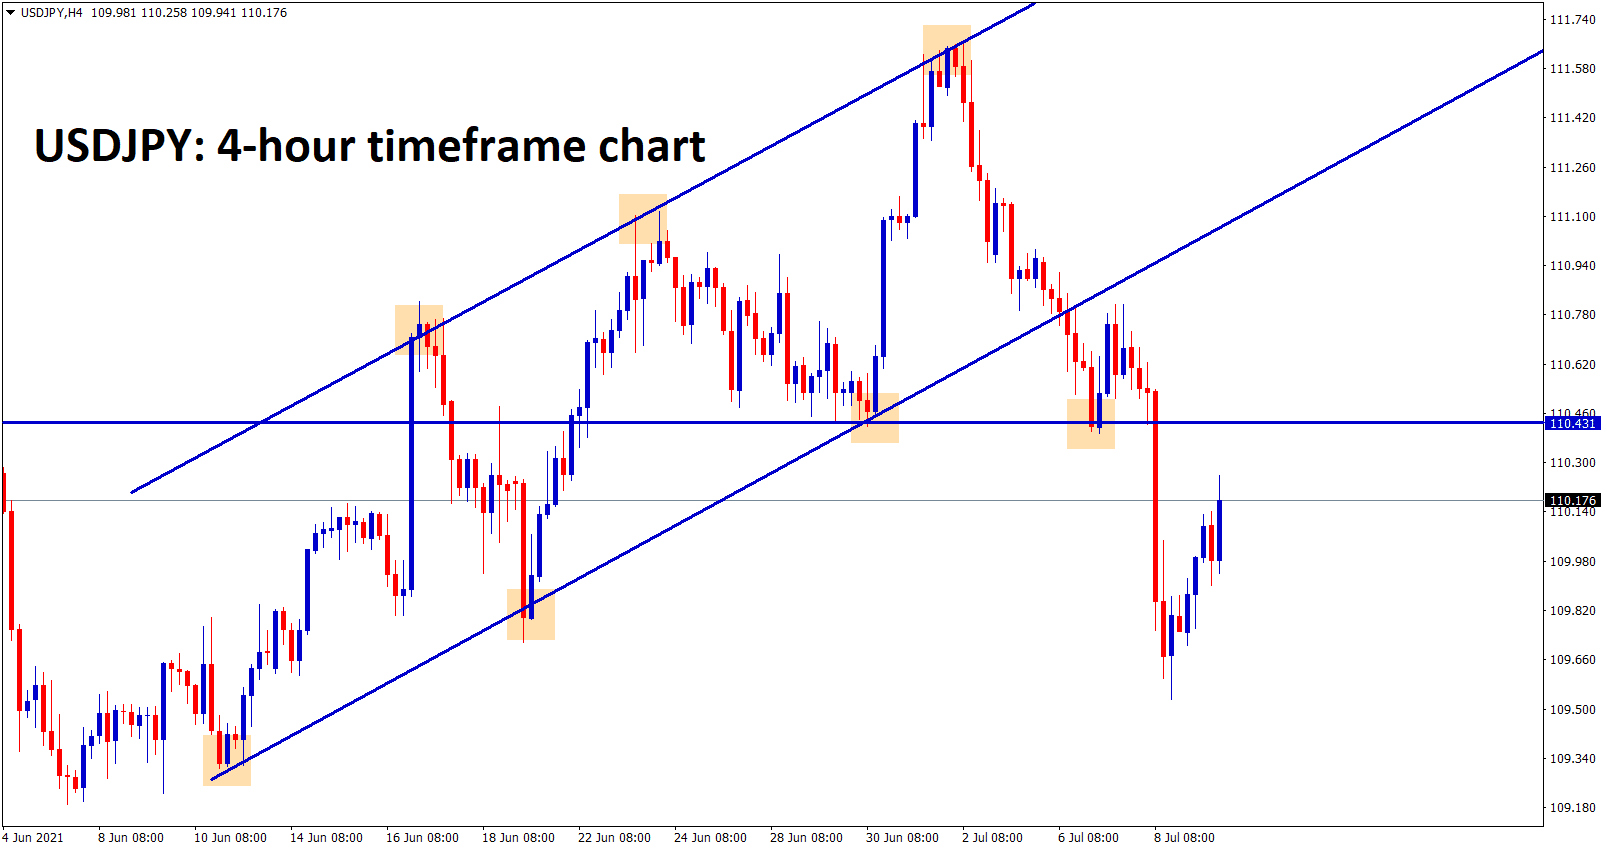 USDJPY trying to retest the previous support zone or broken uptrend line.